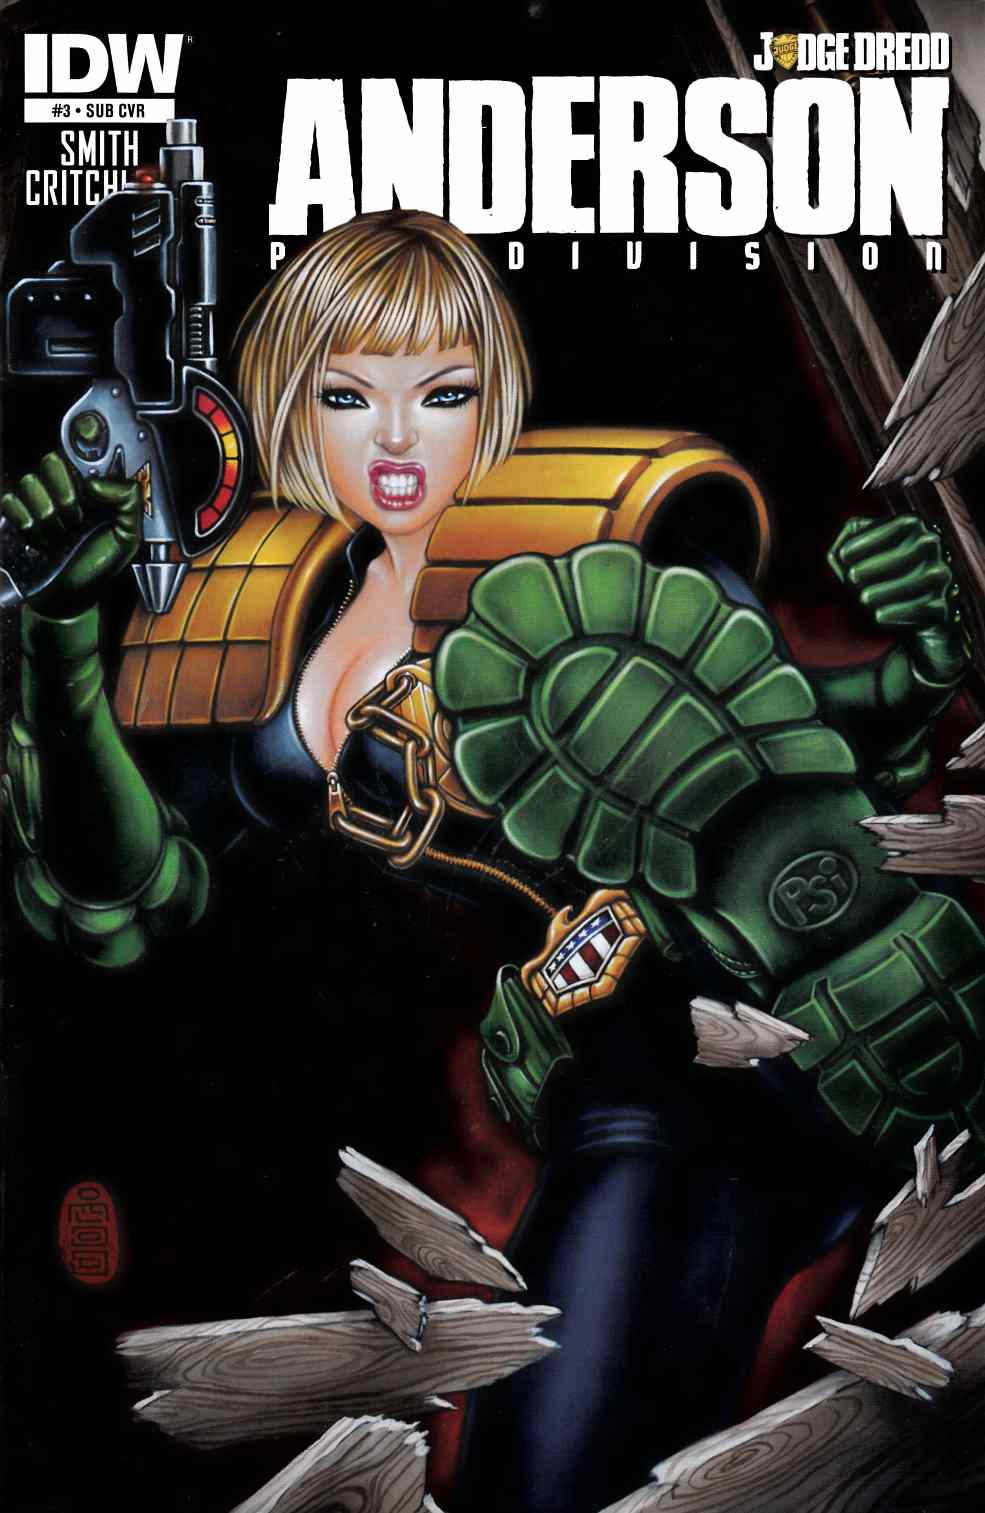 Judge Dredd Anderson PSI Division #3 Subscription Cover [IDW Comic] THUMBNAIL